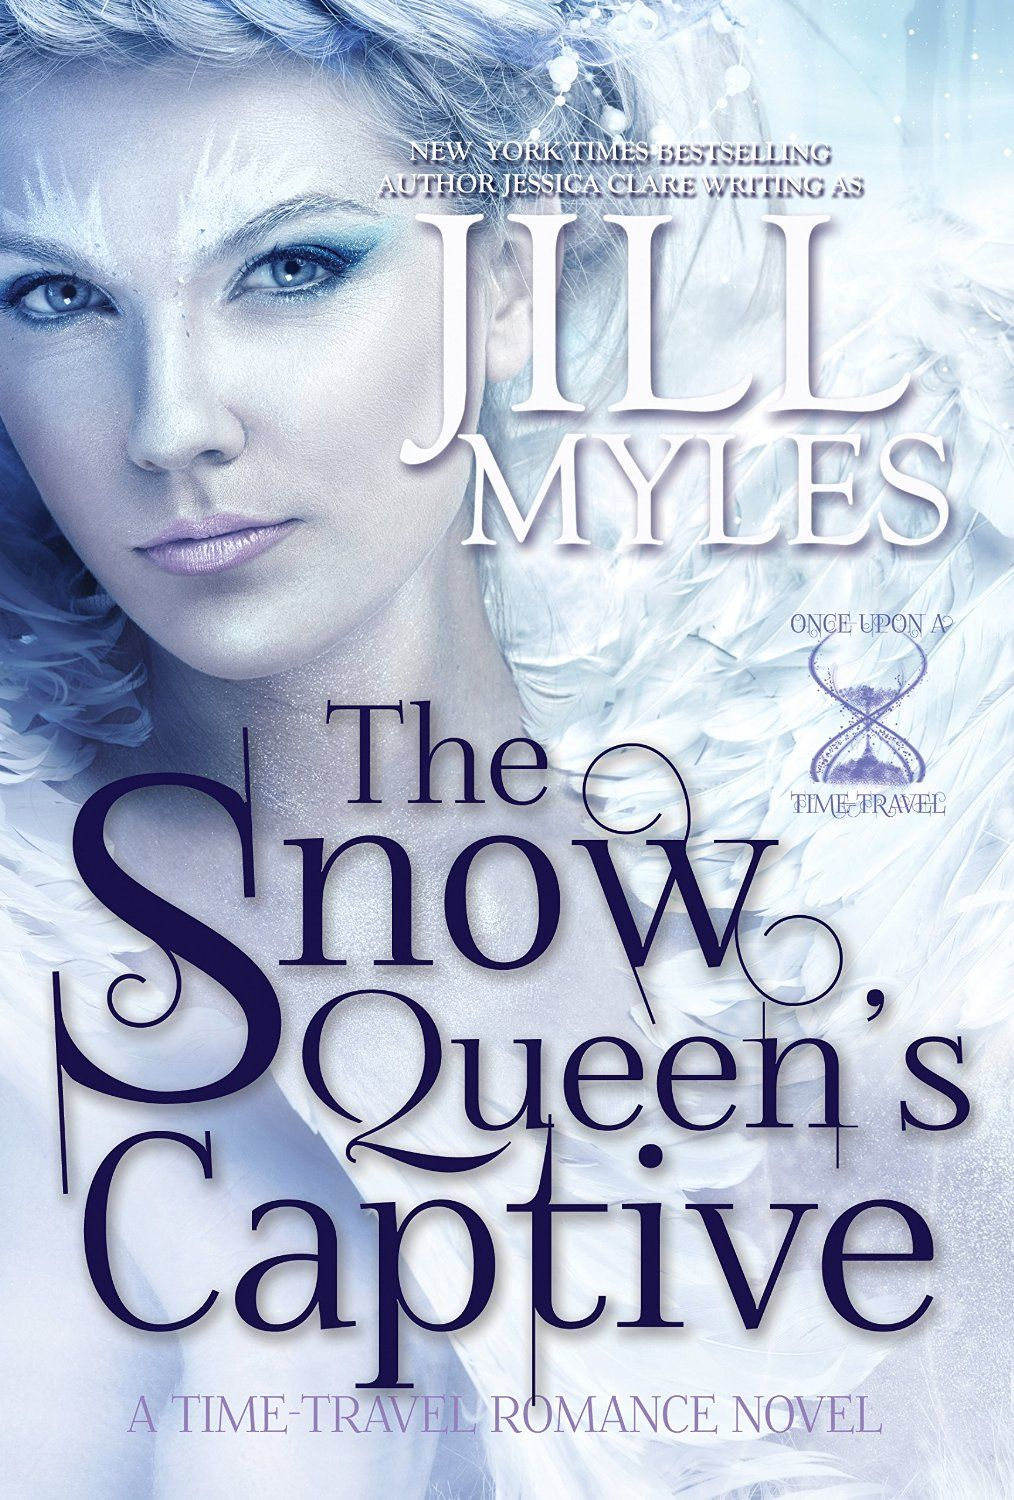 The Snow Queen's Captive - Charlotte gets more than she bargained for when her fairy godmother, Muffin, sends her into a fairy tale for a second .. Buy Now